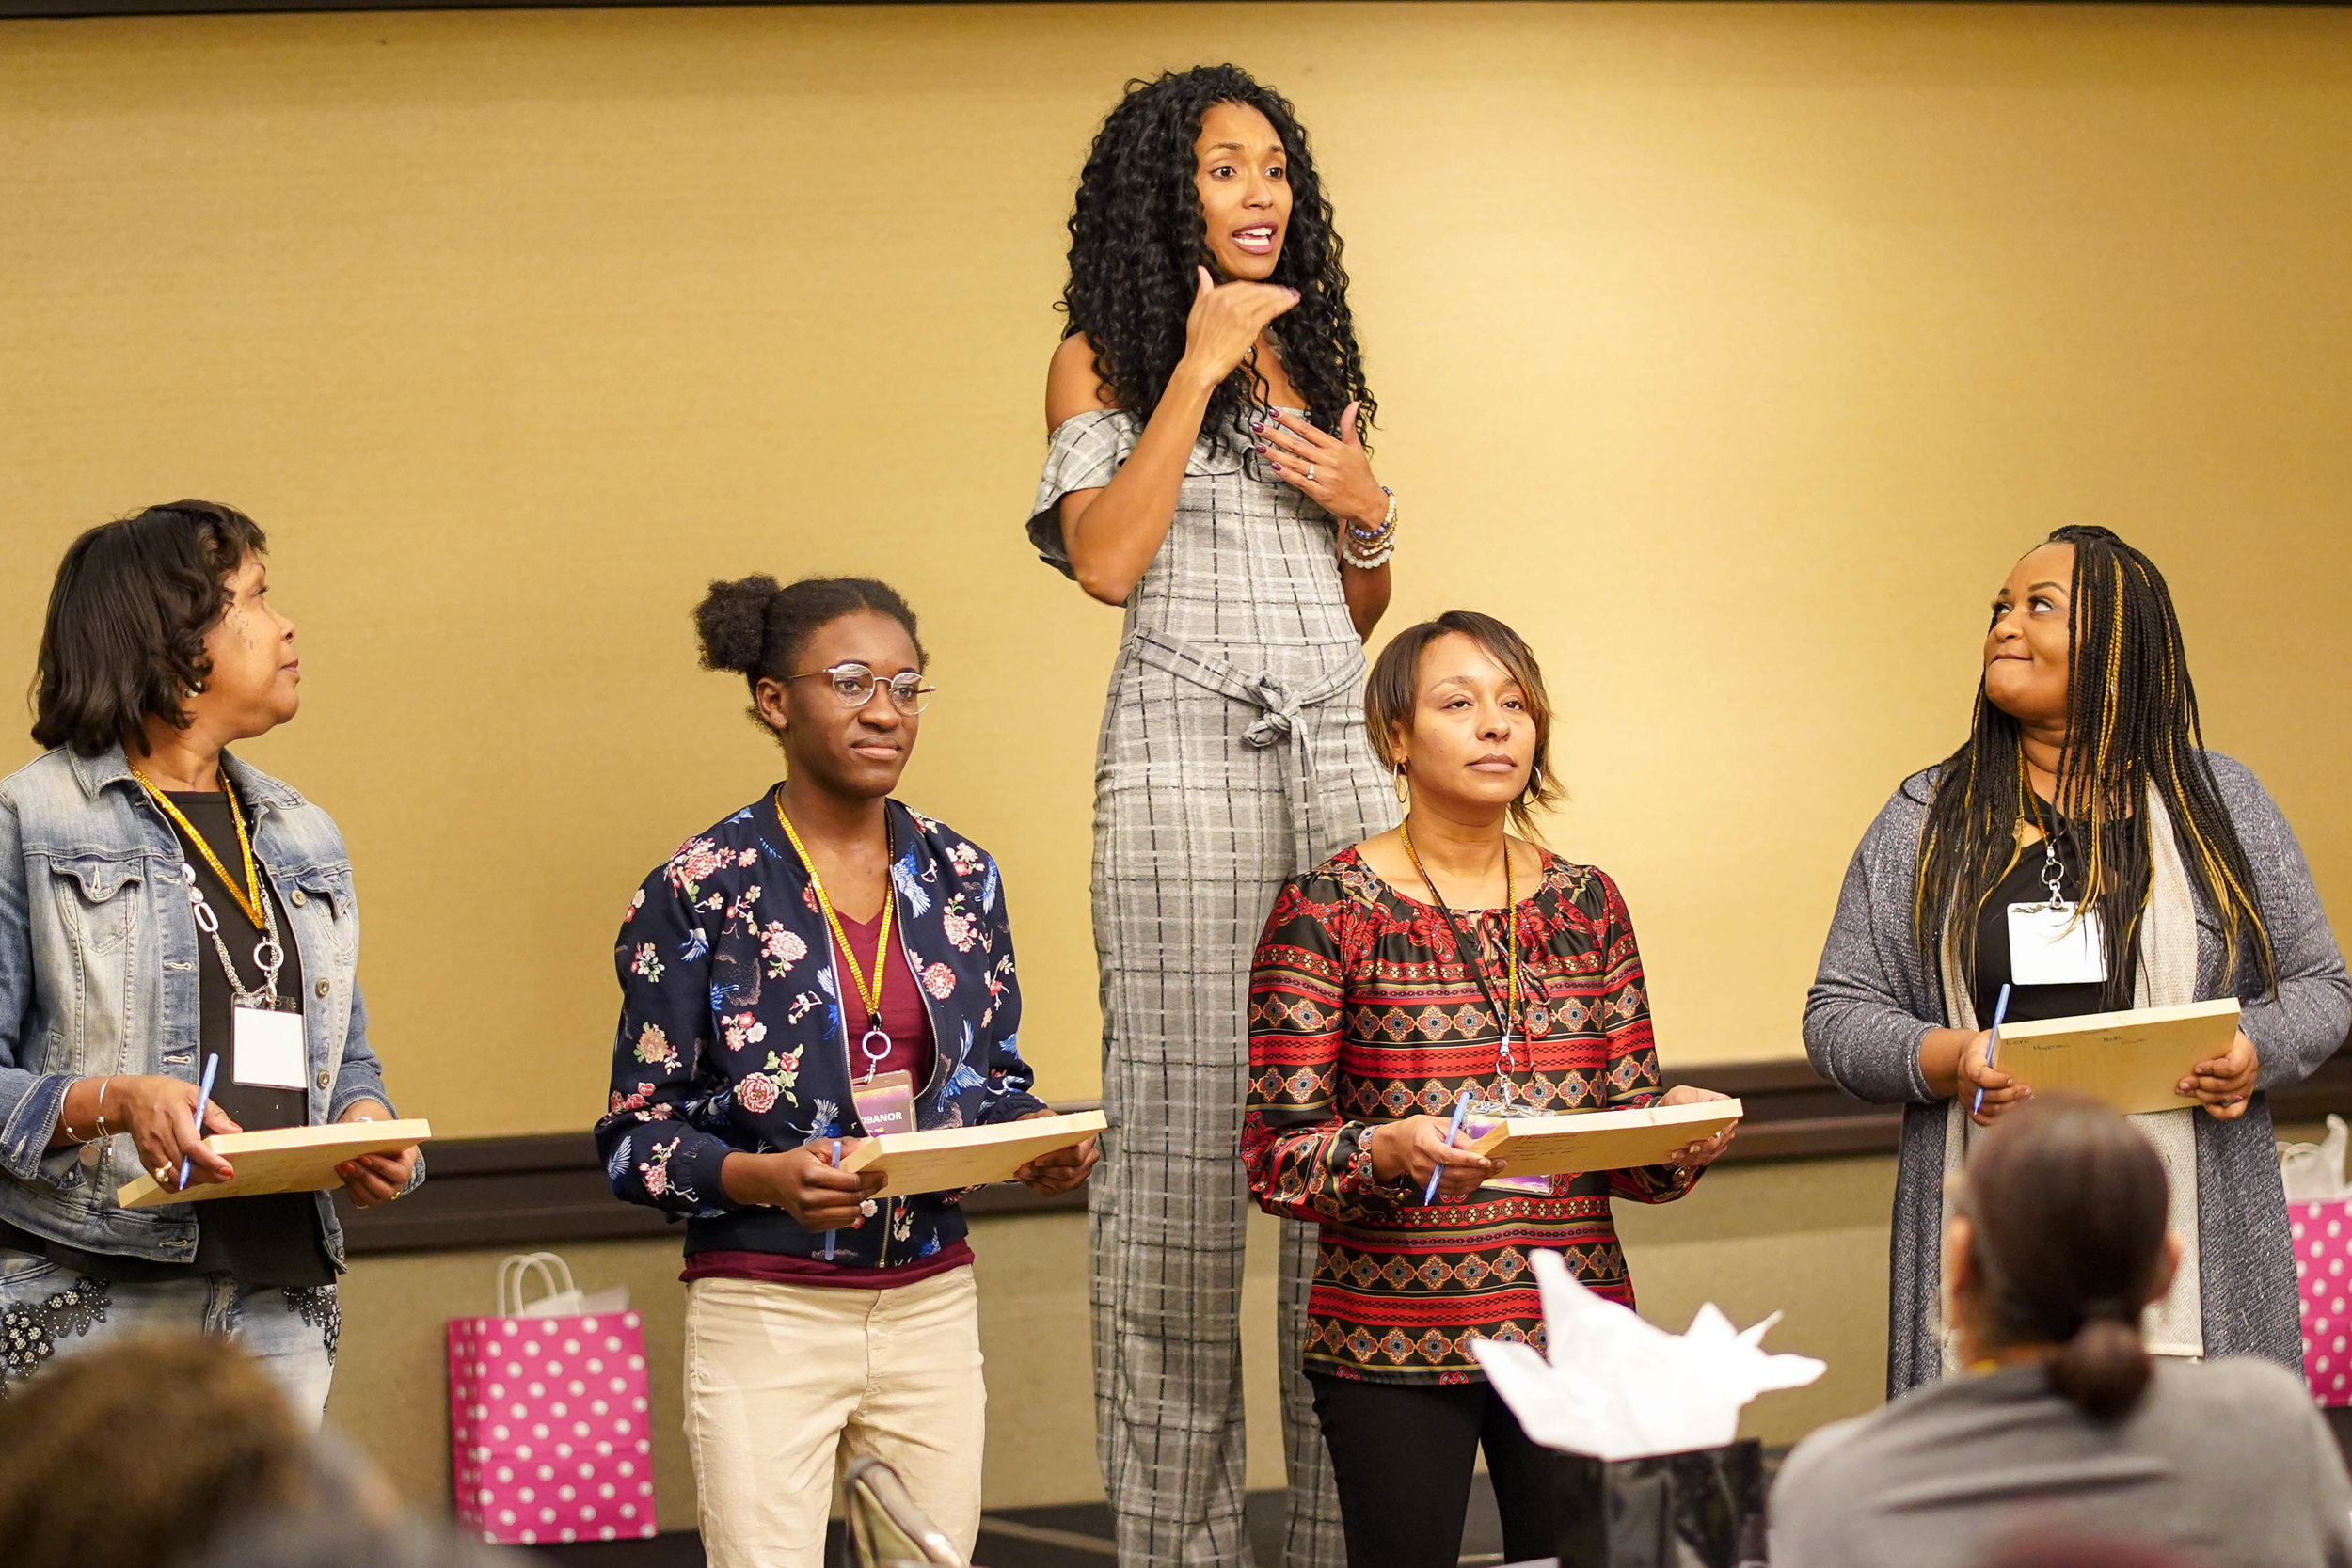 Lindsey Vertner helps women to literally breakthrough their fears at a women's empowerment conference.